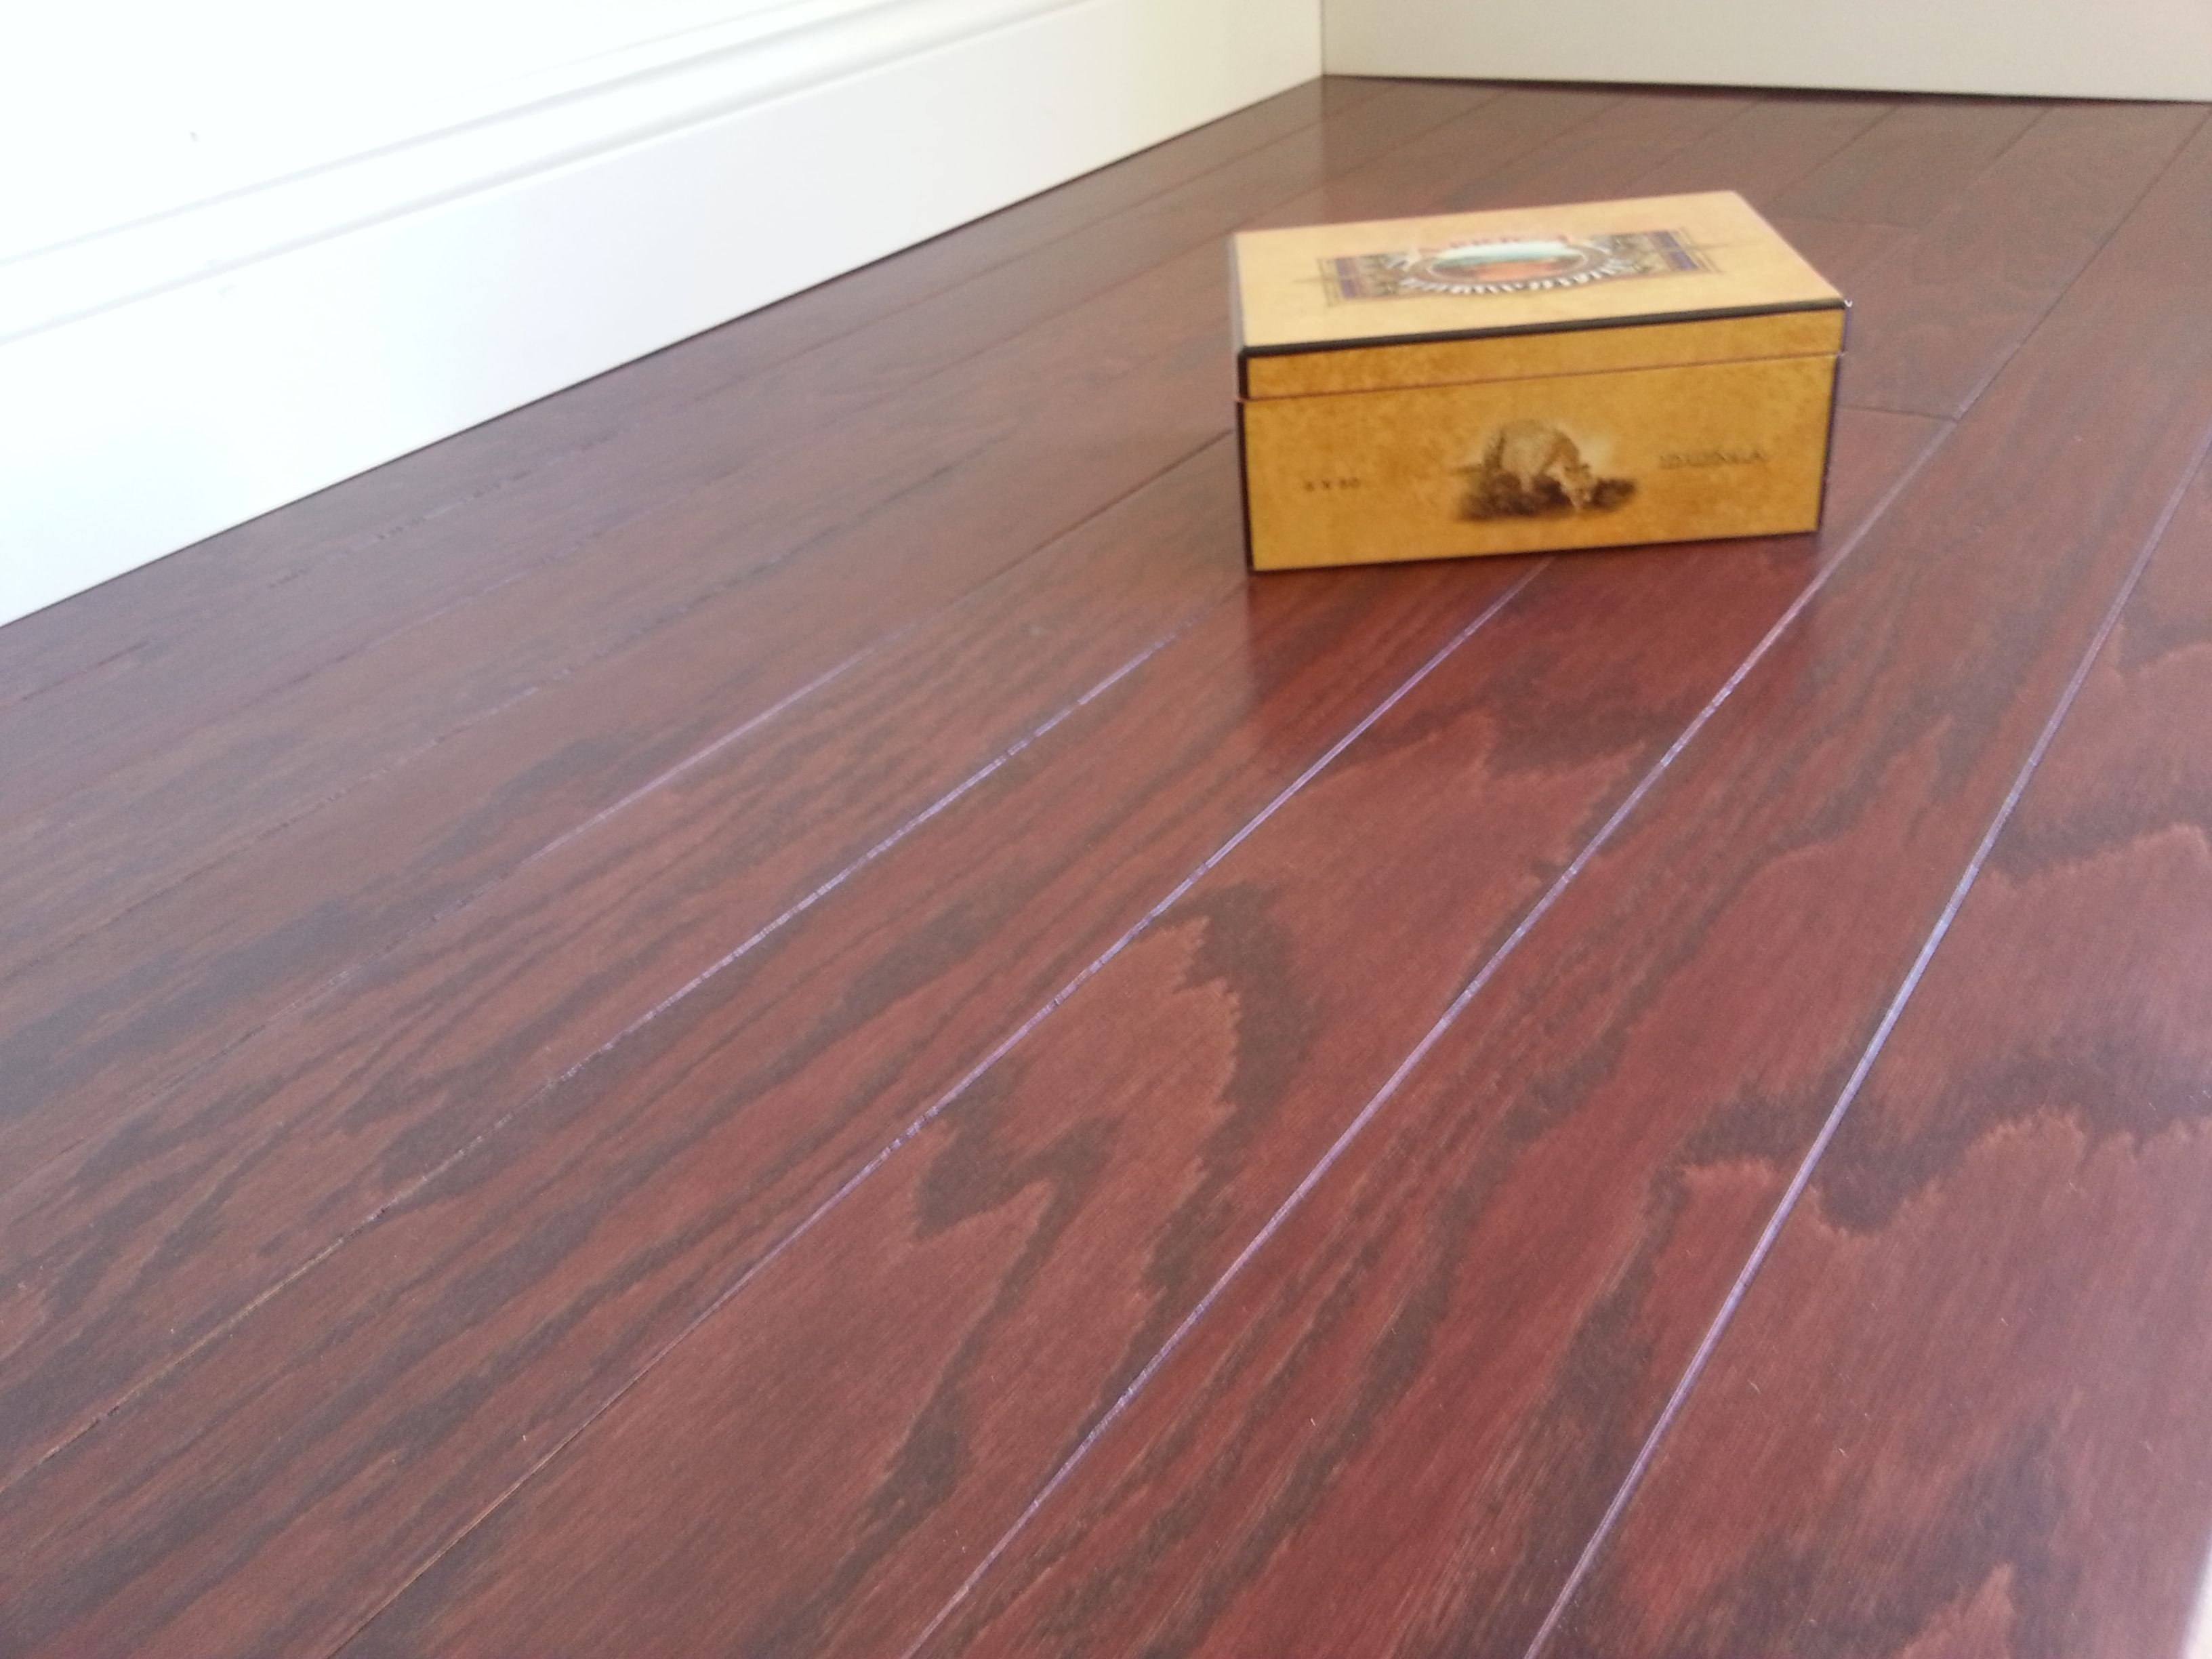 types of engineered hardwood flooring of 3 1 4 symphonic engineered oak merlot hardwood flooring as low as within 3 1 4 symphonic engineered oak merlot hardwood flooring as low as 3 23 sf